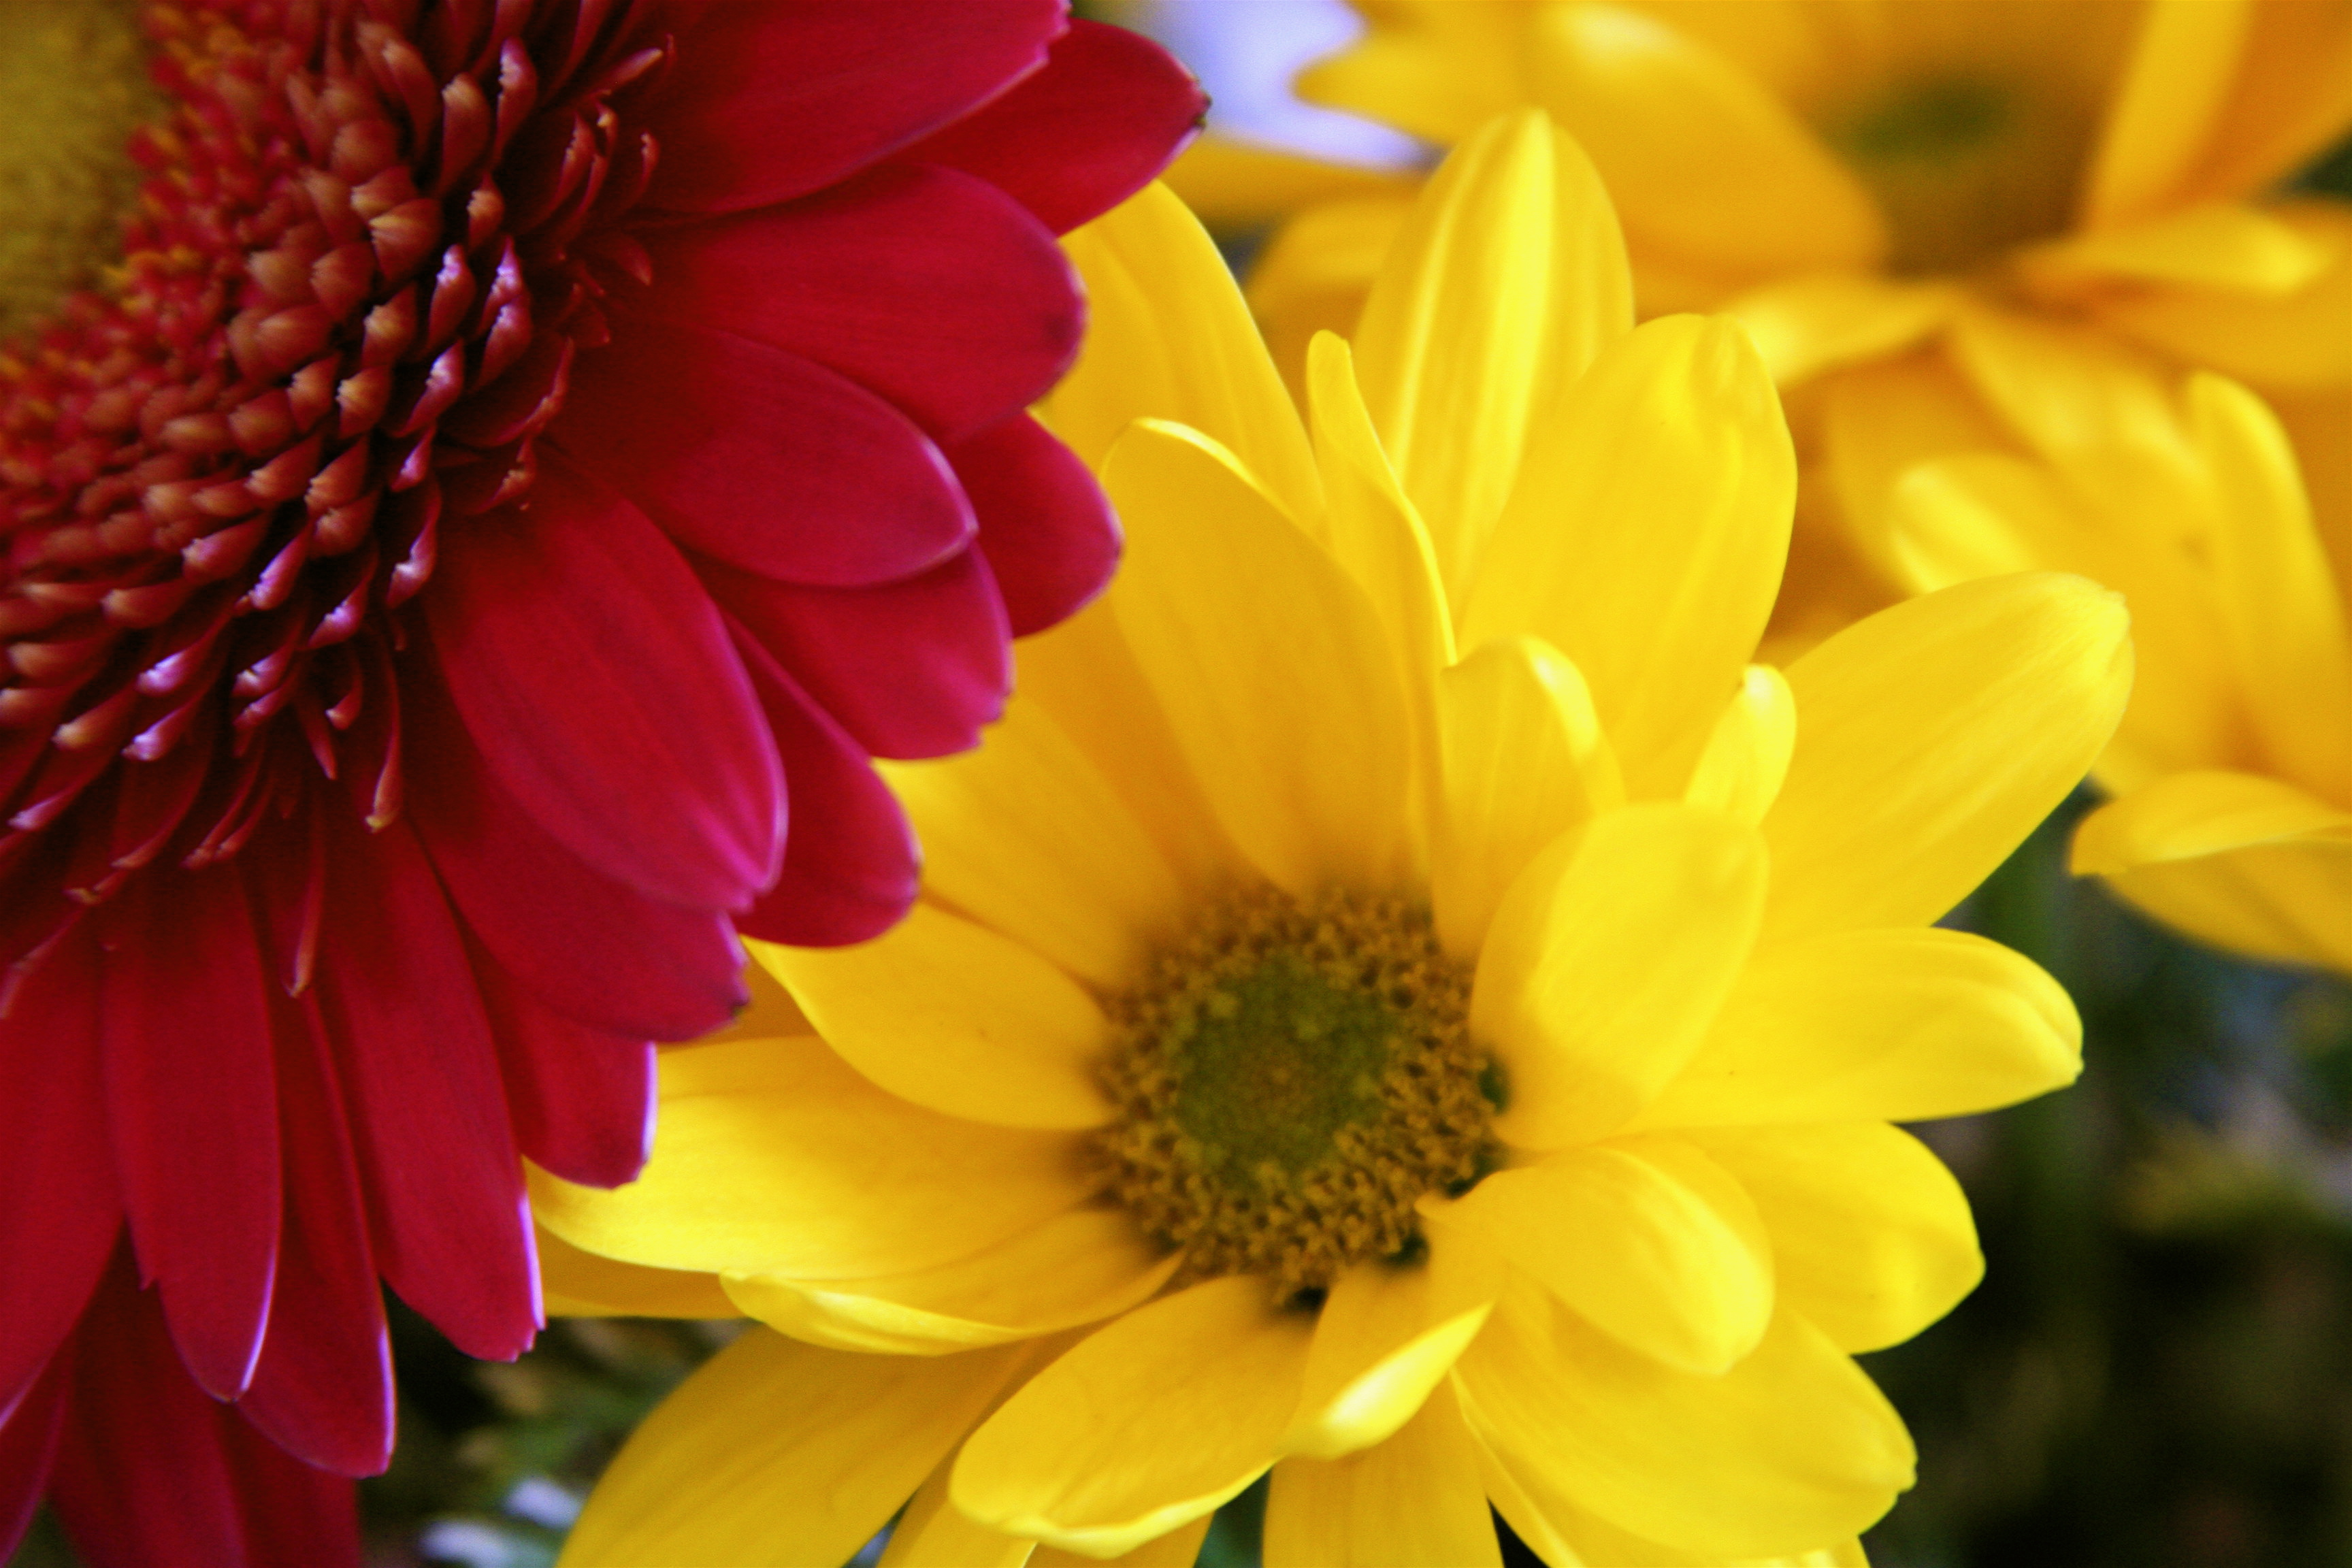 What types of flowers to send for a birthday